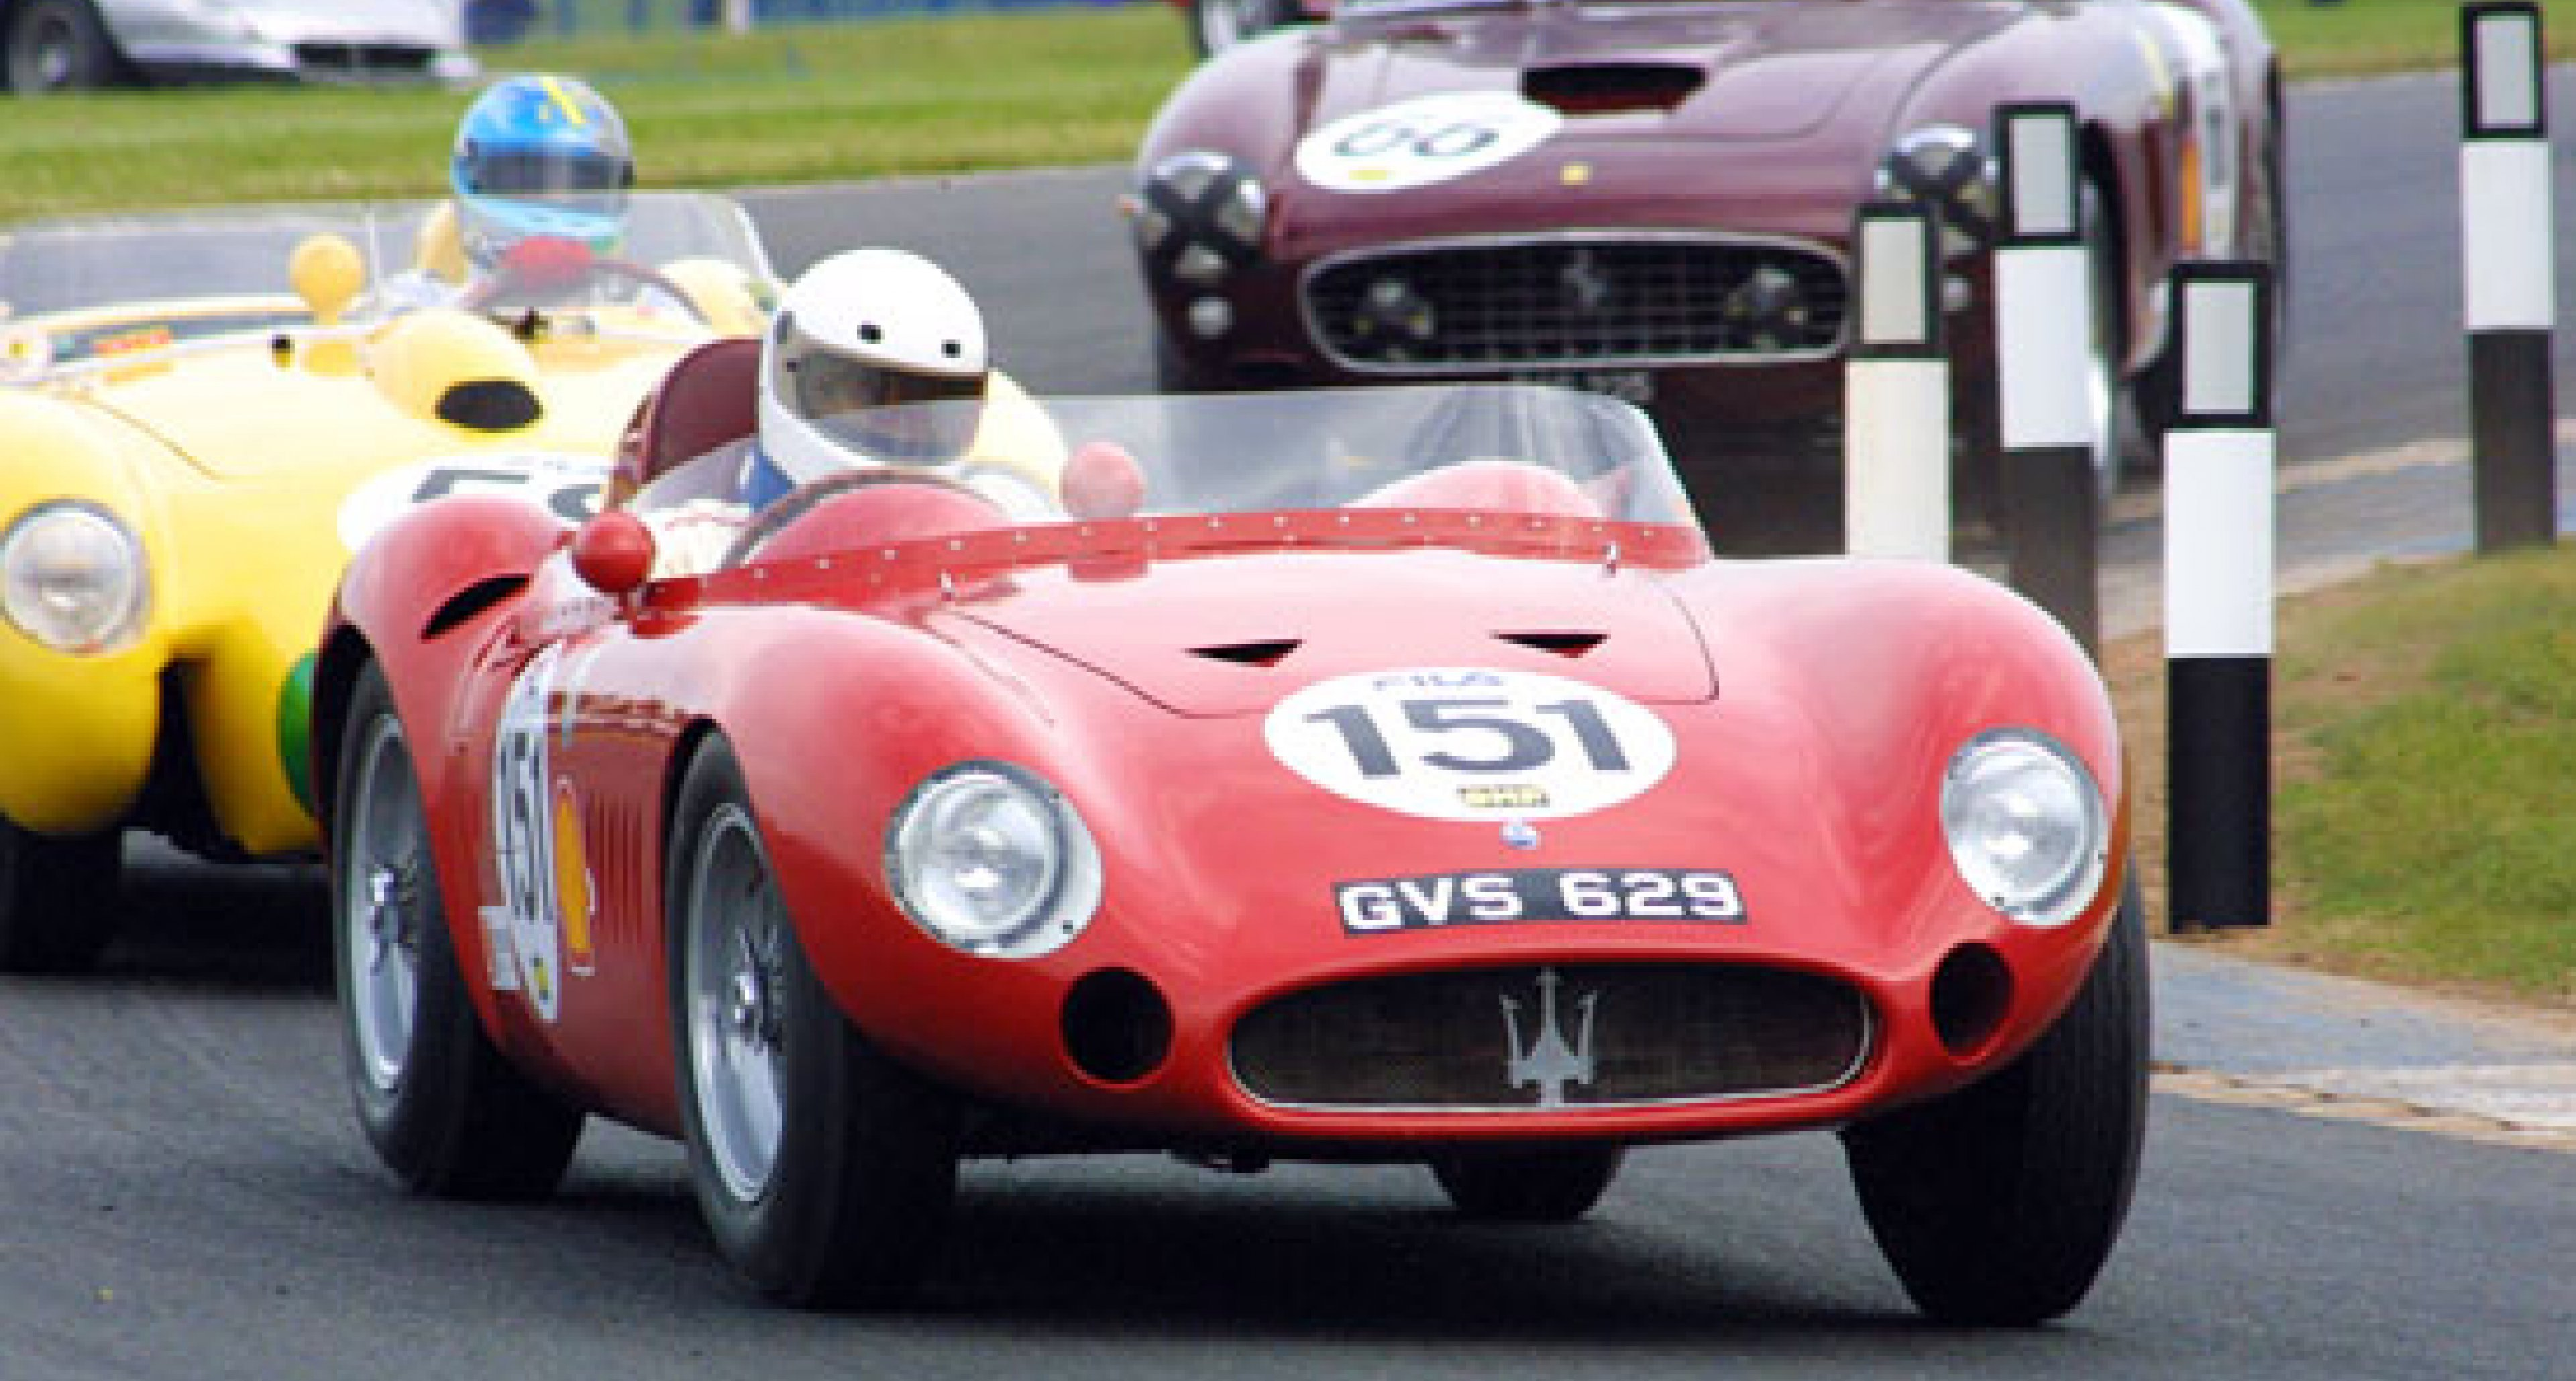 VSCC announces 2004 Italian Vintage and Historic Festival at Donington Park entitled 'See Red'